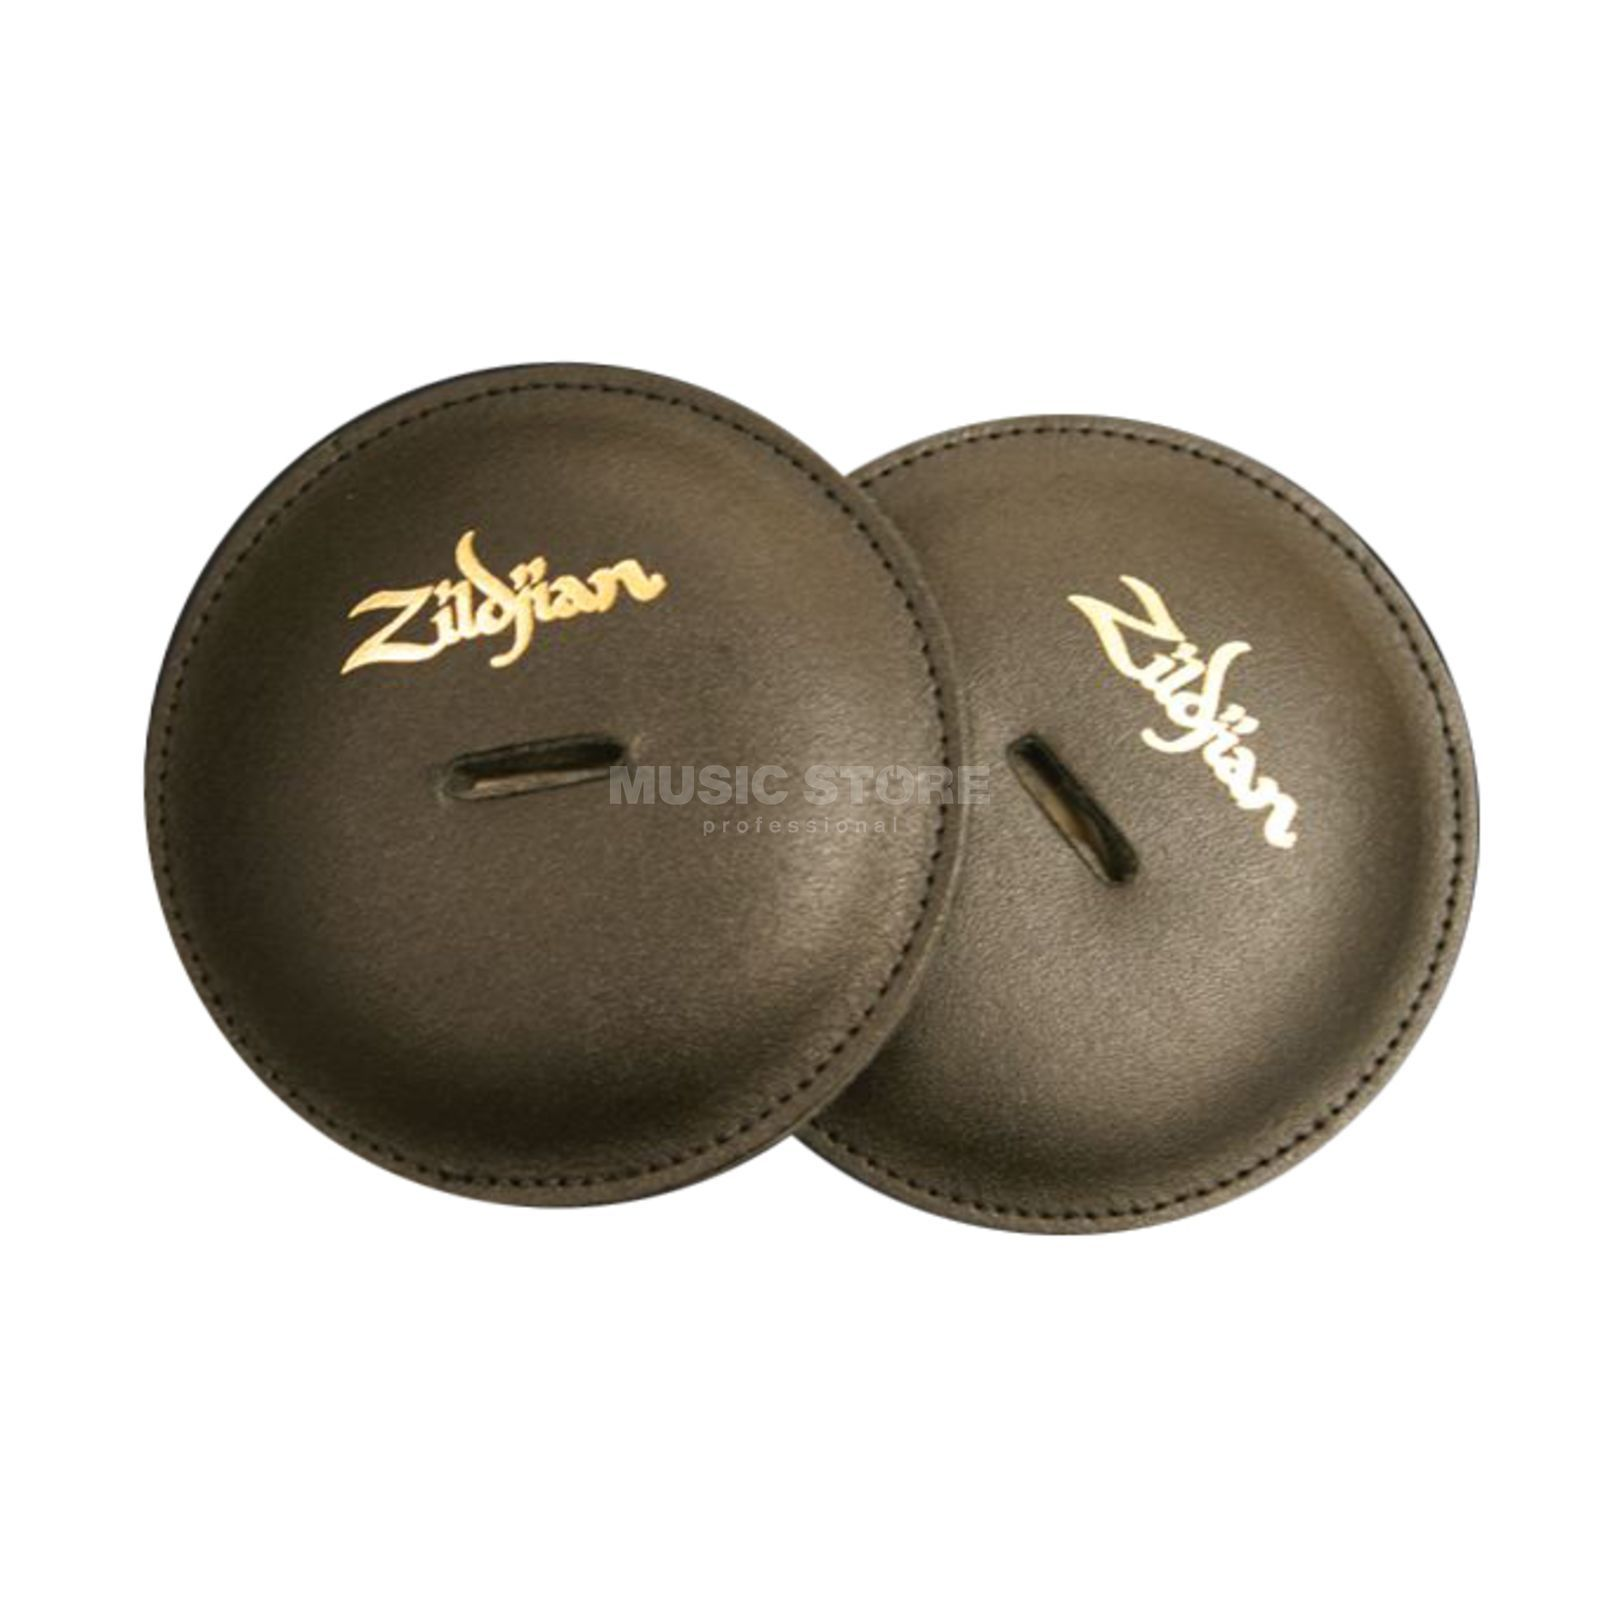 Zildjian Leather Pads (Pair) für Marching Cymbals Produktbild